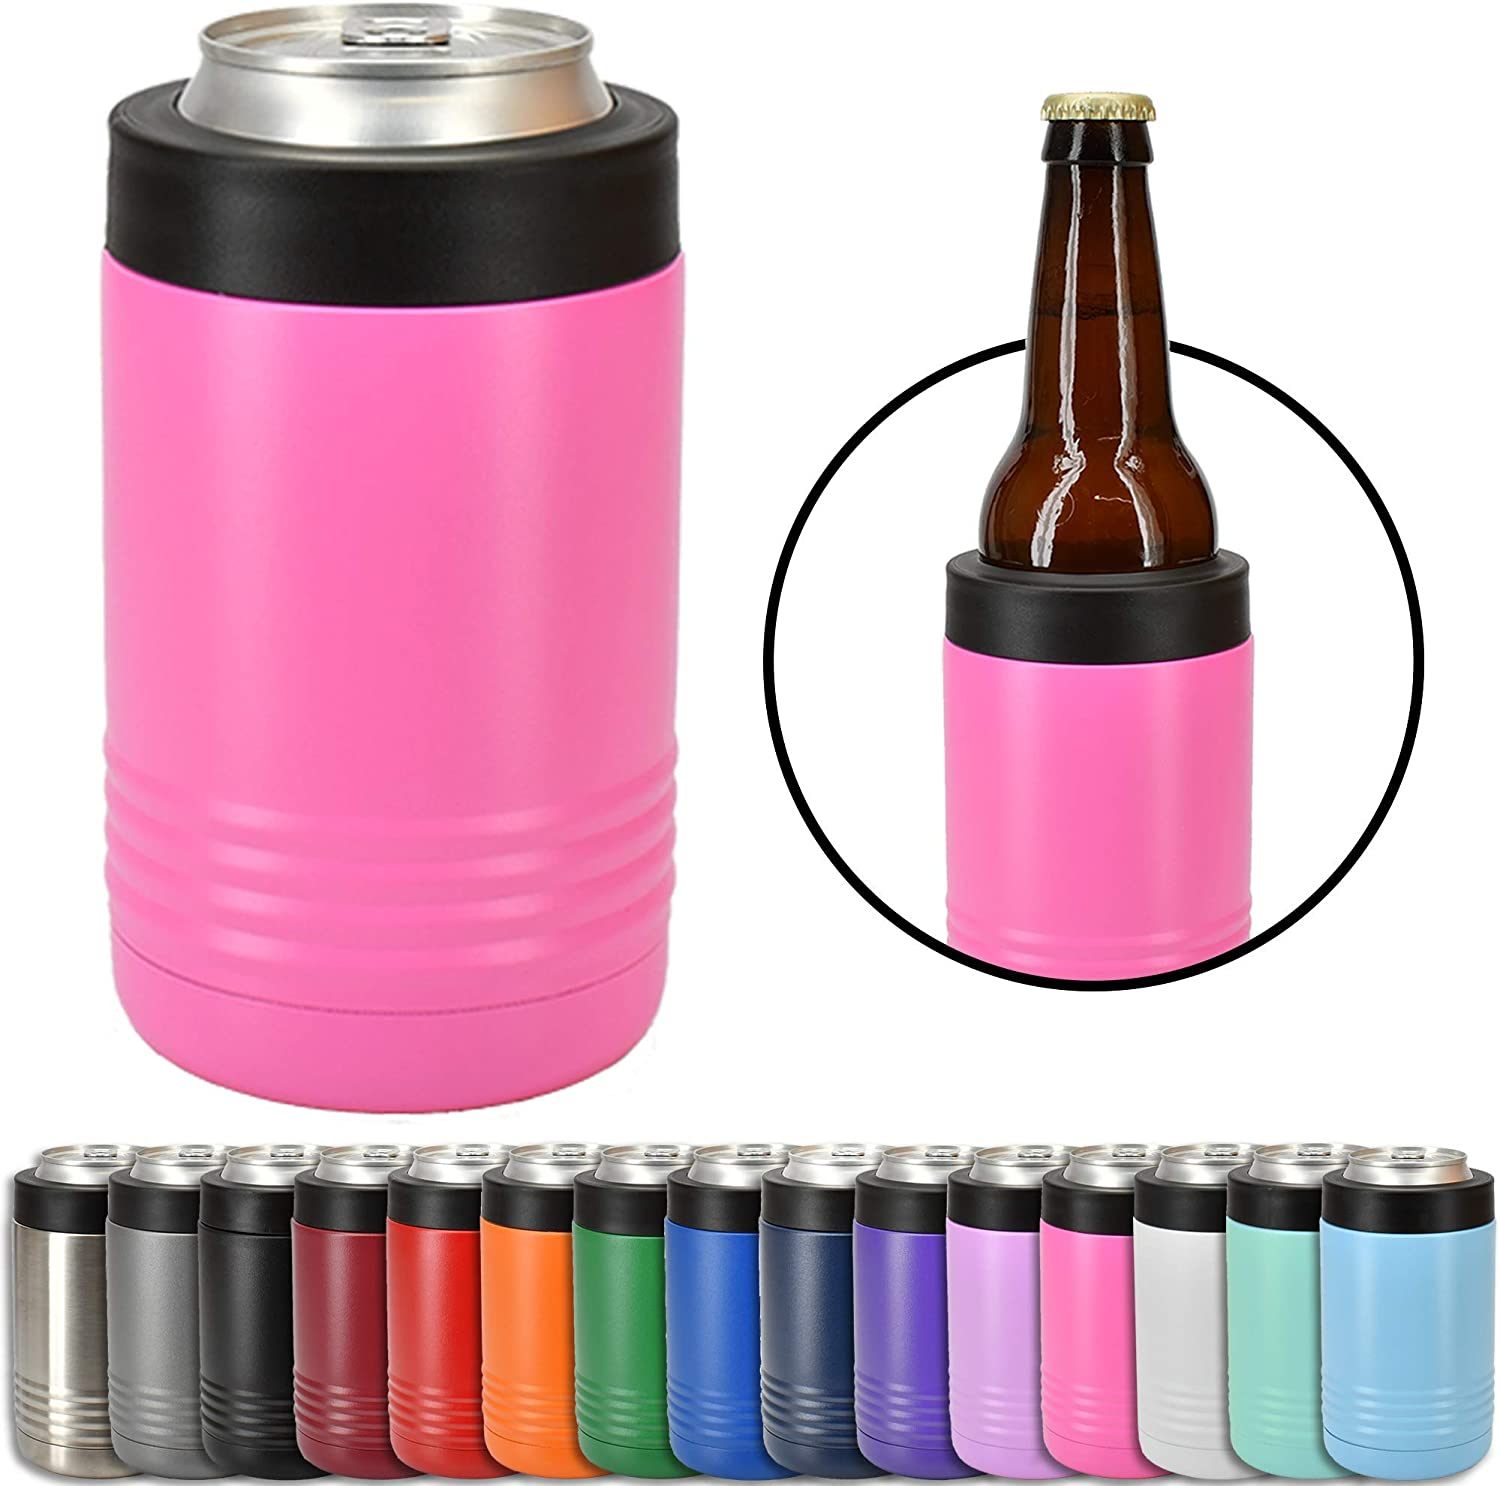 Clear Water Home Goods - 12 oz Stainless Steel Double Wall Vacuum Insulated Can or Bottle Cooler Keeps Beverage Cold for Hours - Powder Coated Pink